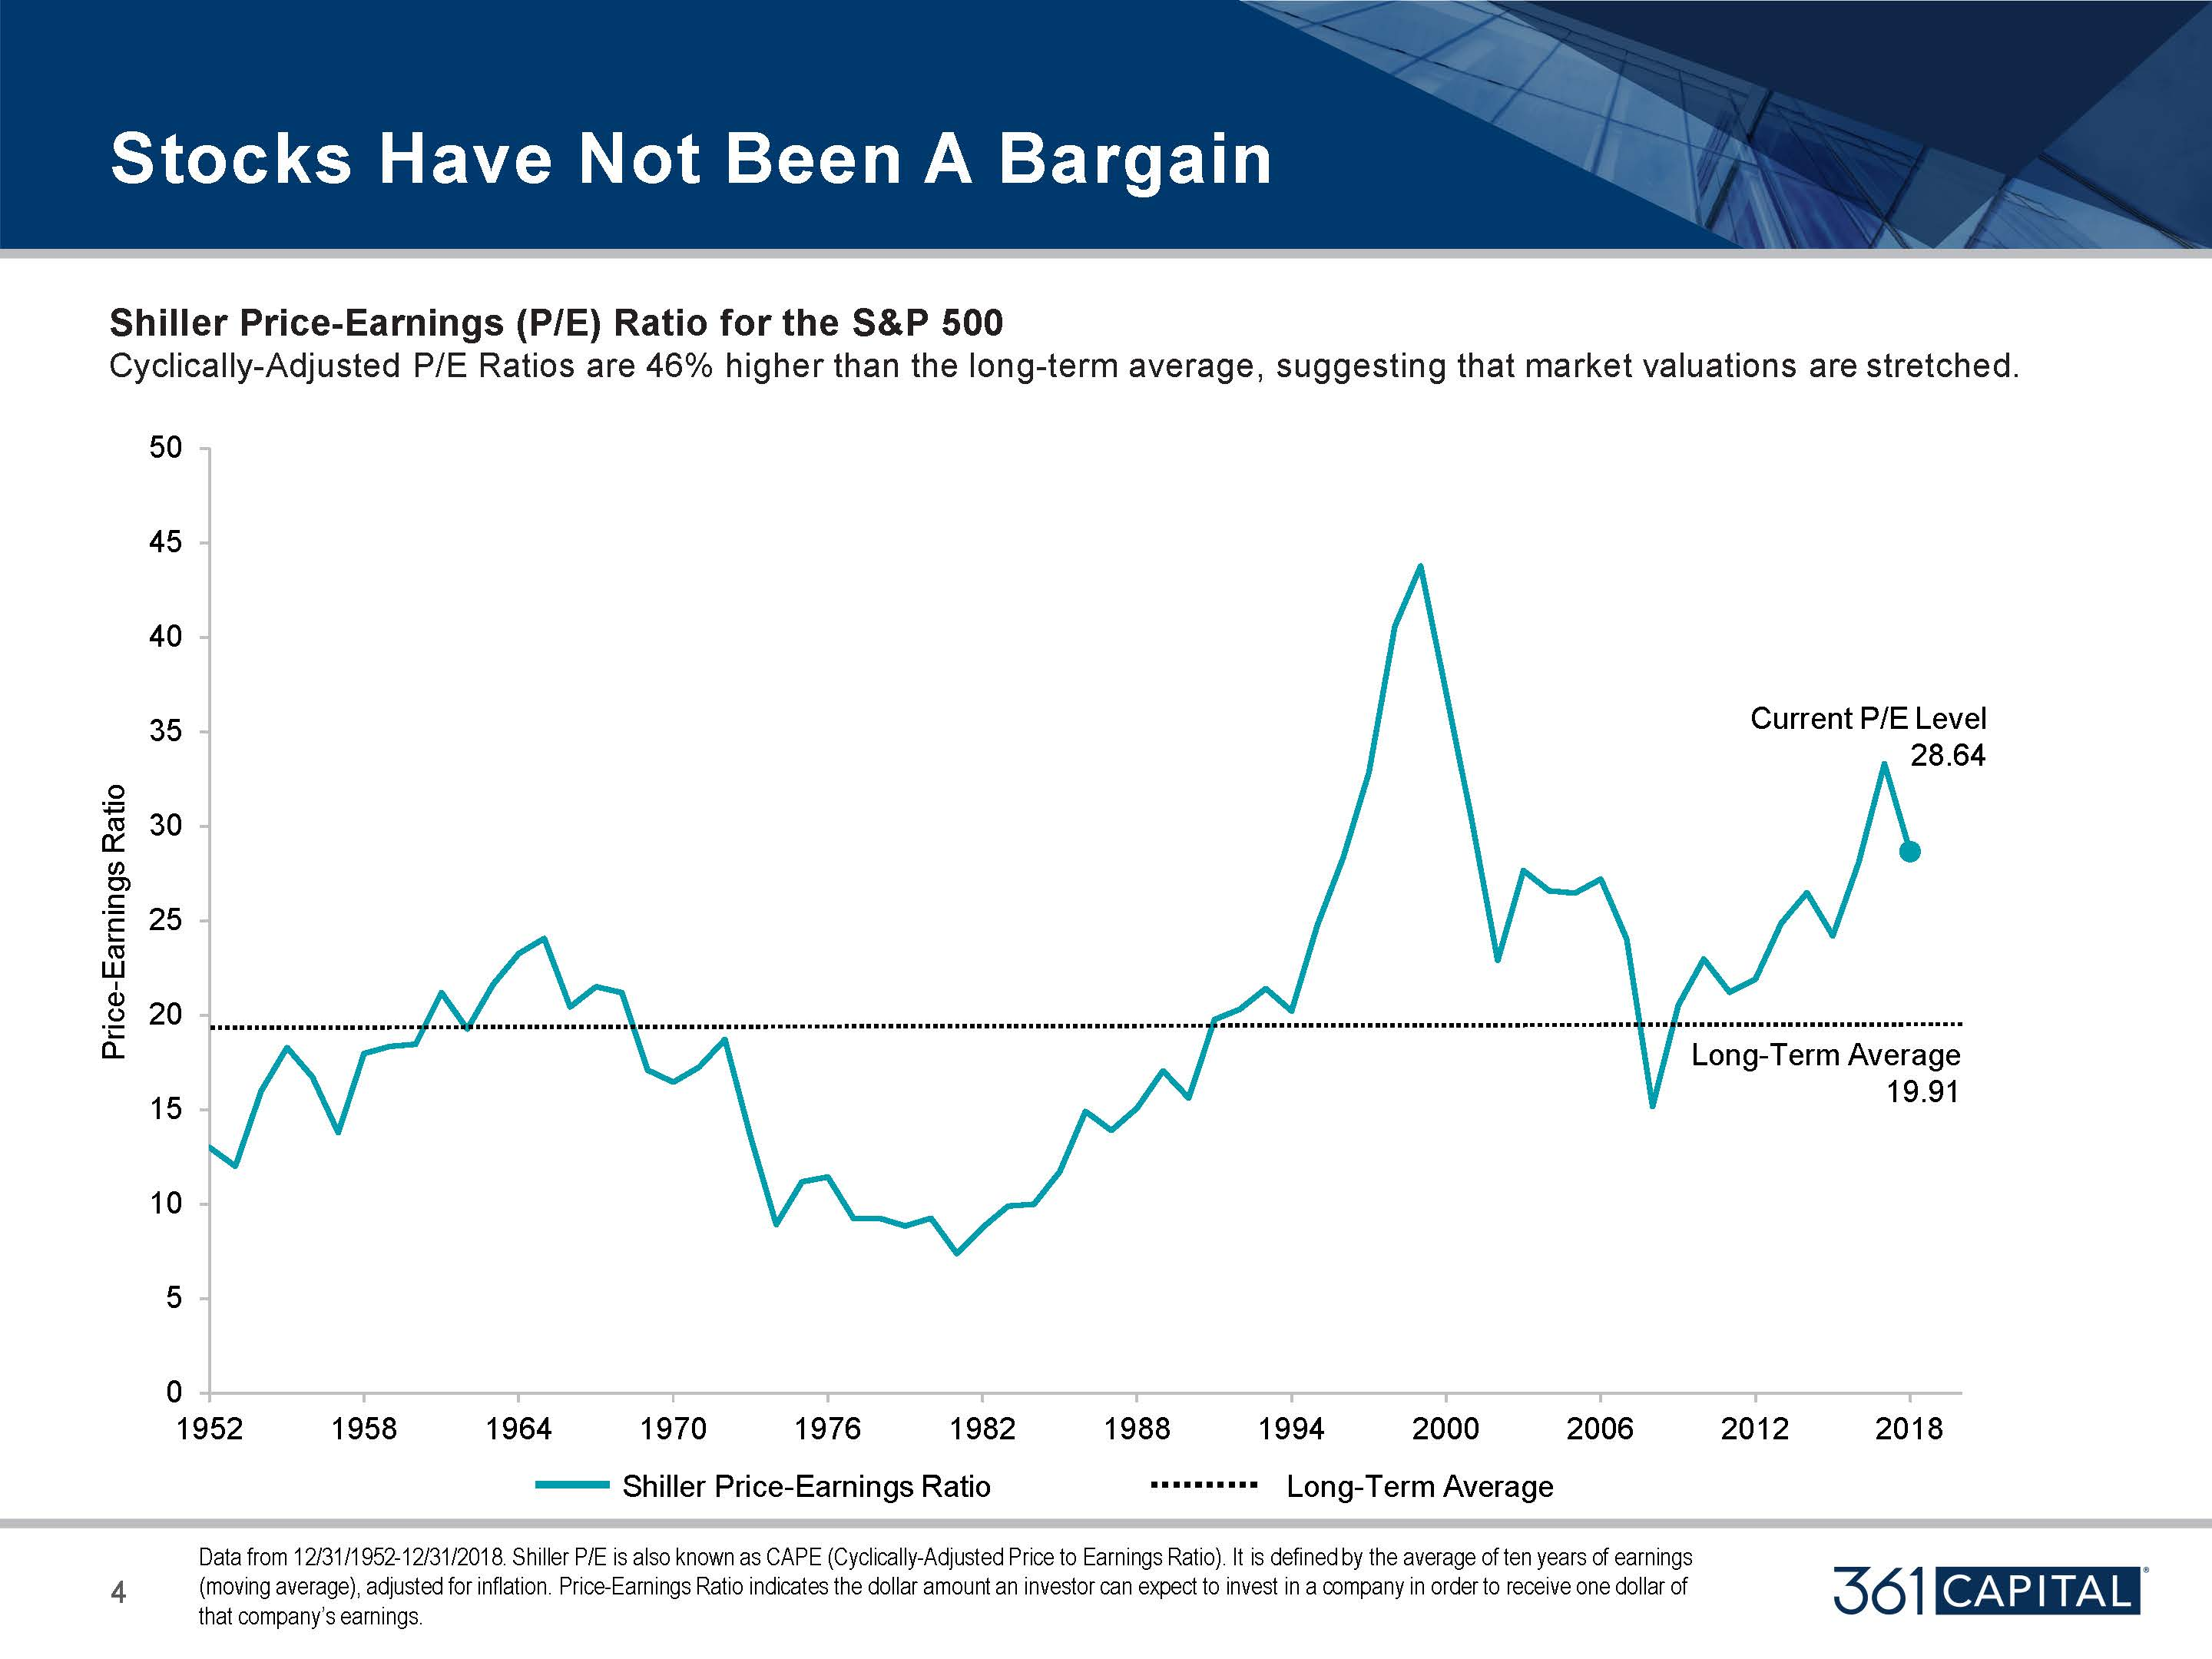 Shiller Price Earnings Ratio for the SP 500